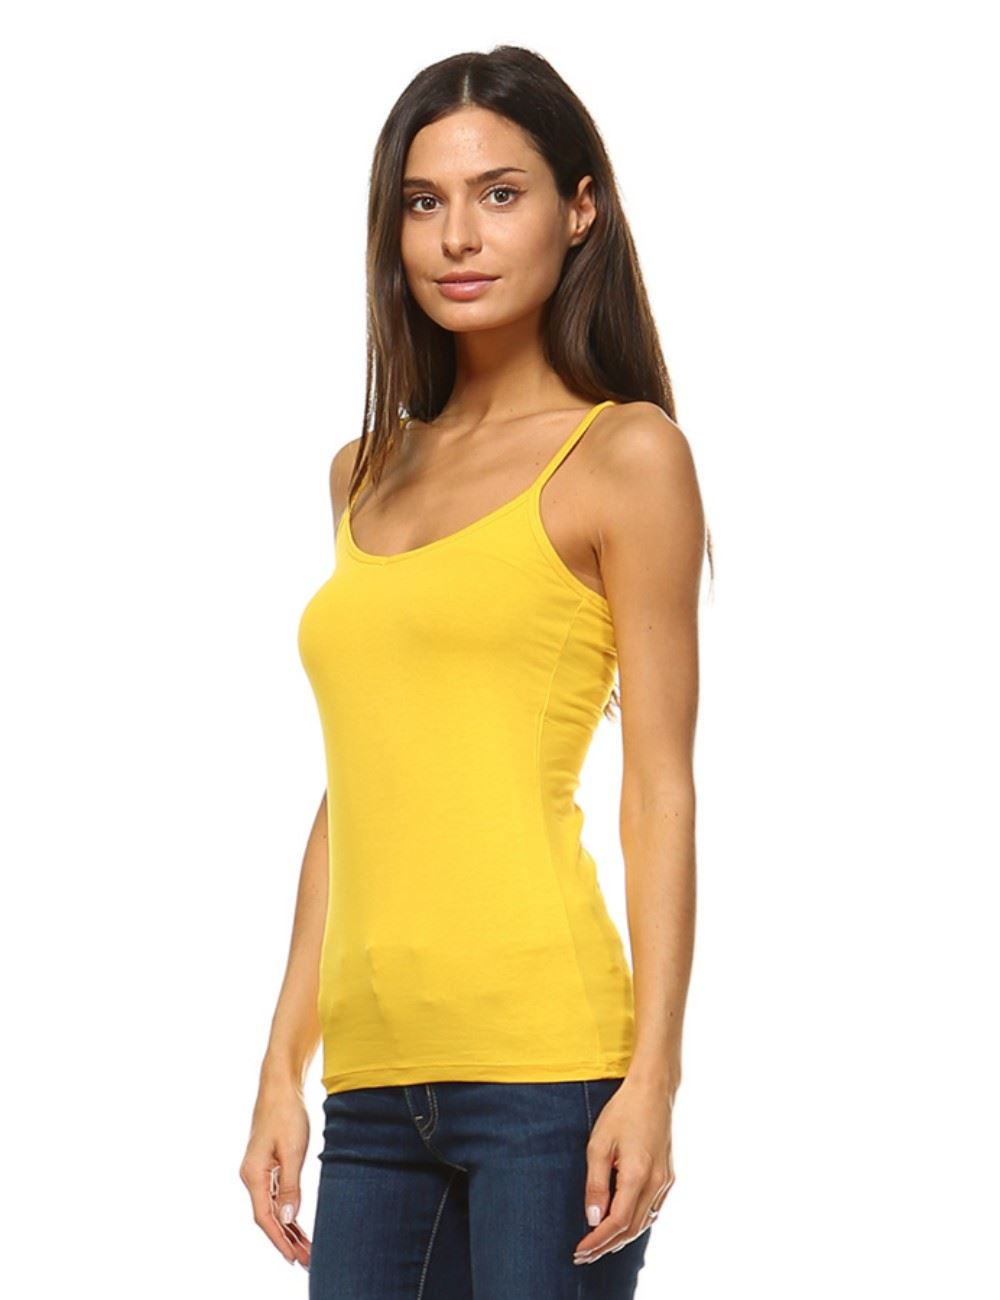 NEW ANNA WOMEN/'S SPAGHETTI STRAP CAMISOLE 6 PACK TANK TOP 5CAMI 6 COLOR S,M,L,XL